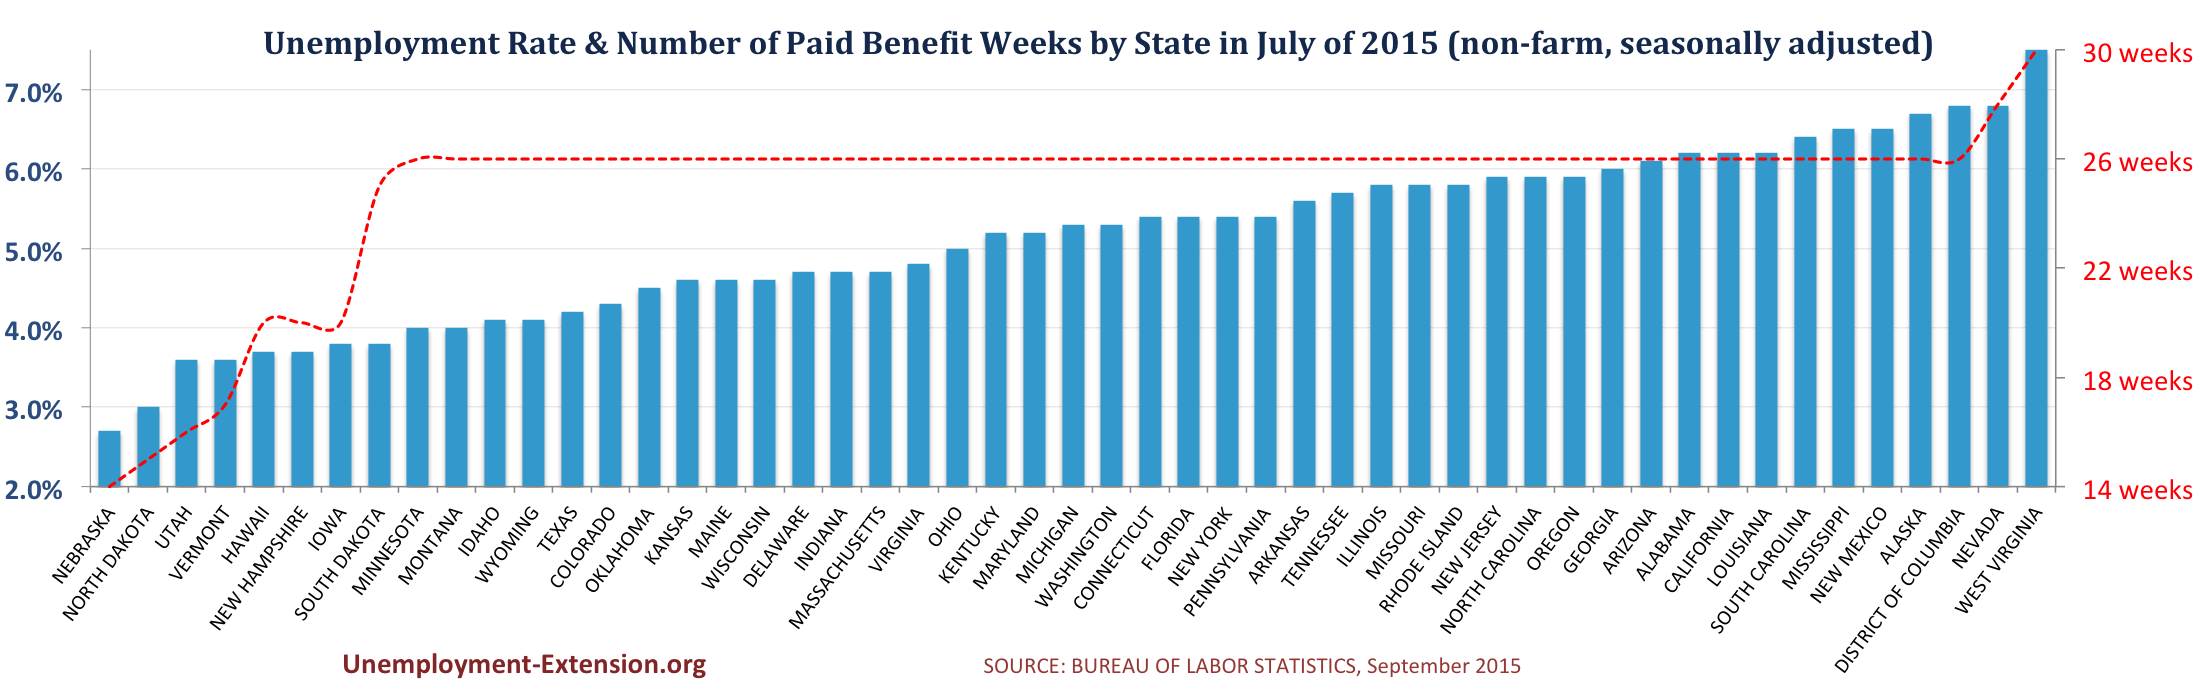 Unemployment Rate and Number of Paid Unemployment Benefit weeks by State (non-farm, seasonally adjusted) in July of 2015